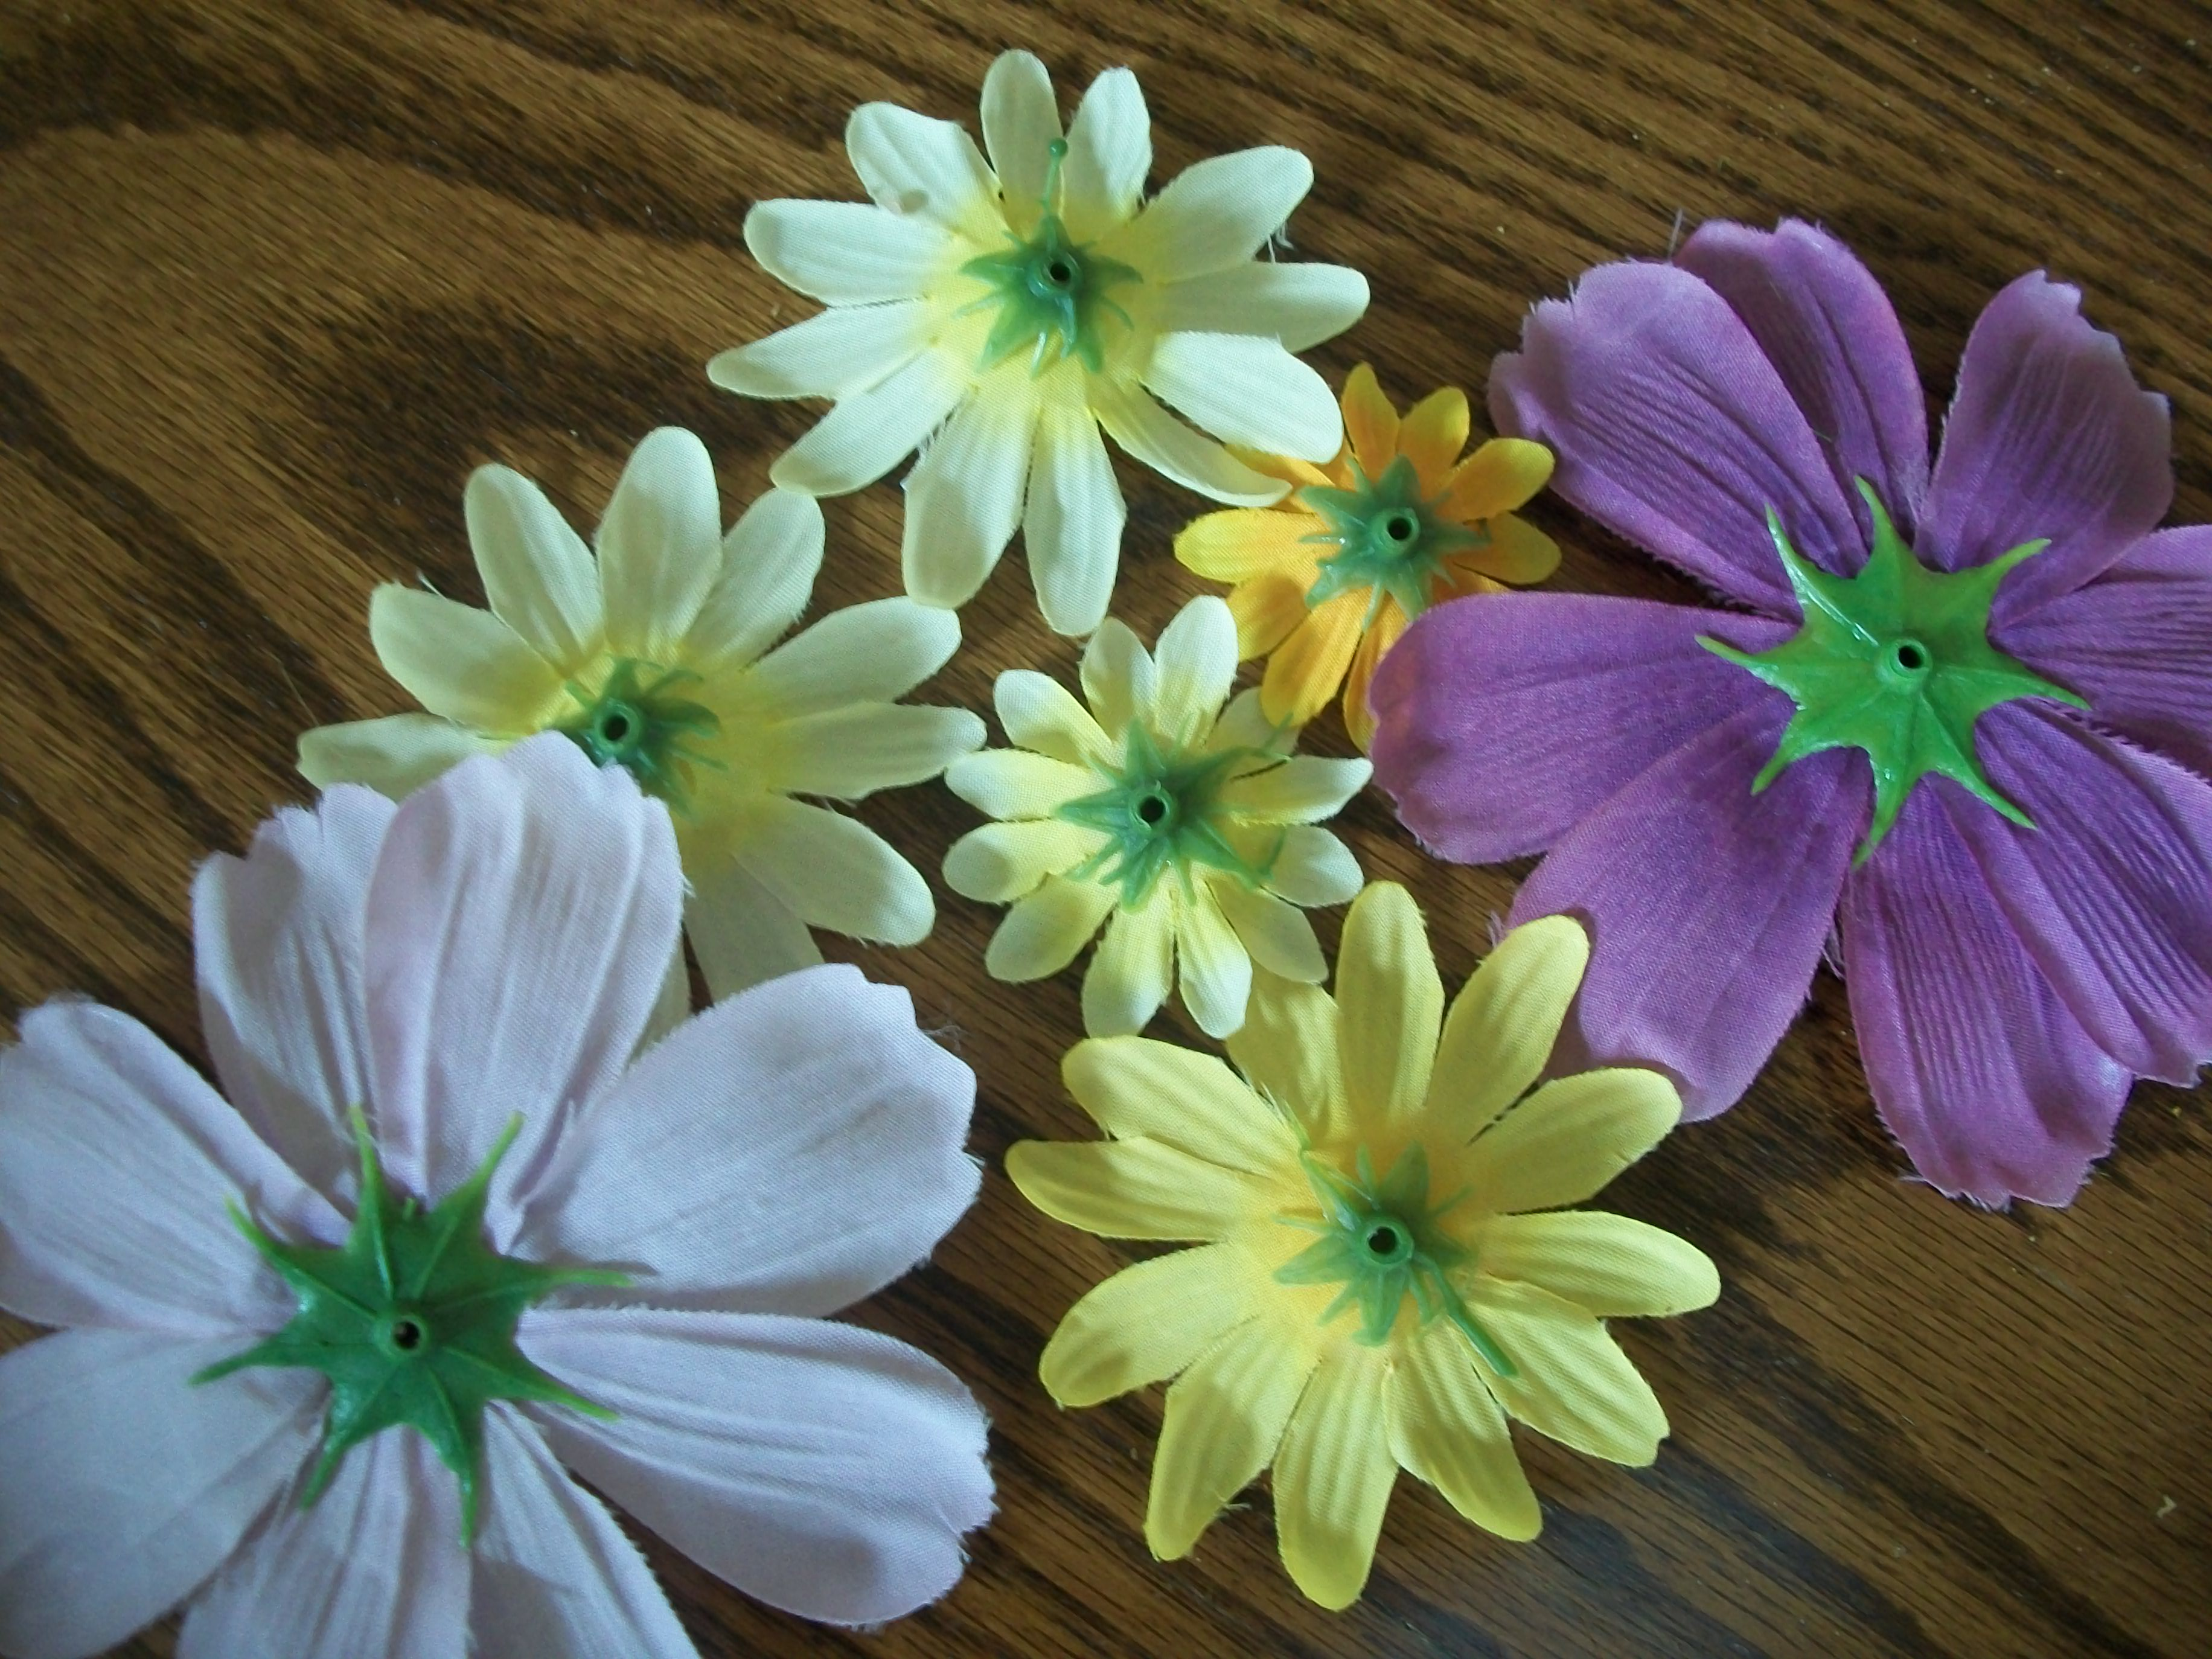 Pull The Flowers Off The Plastic Stems And Cut Off The